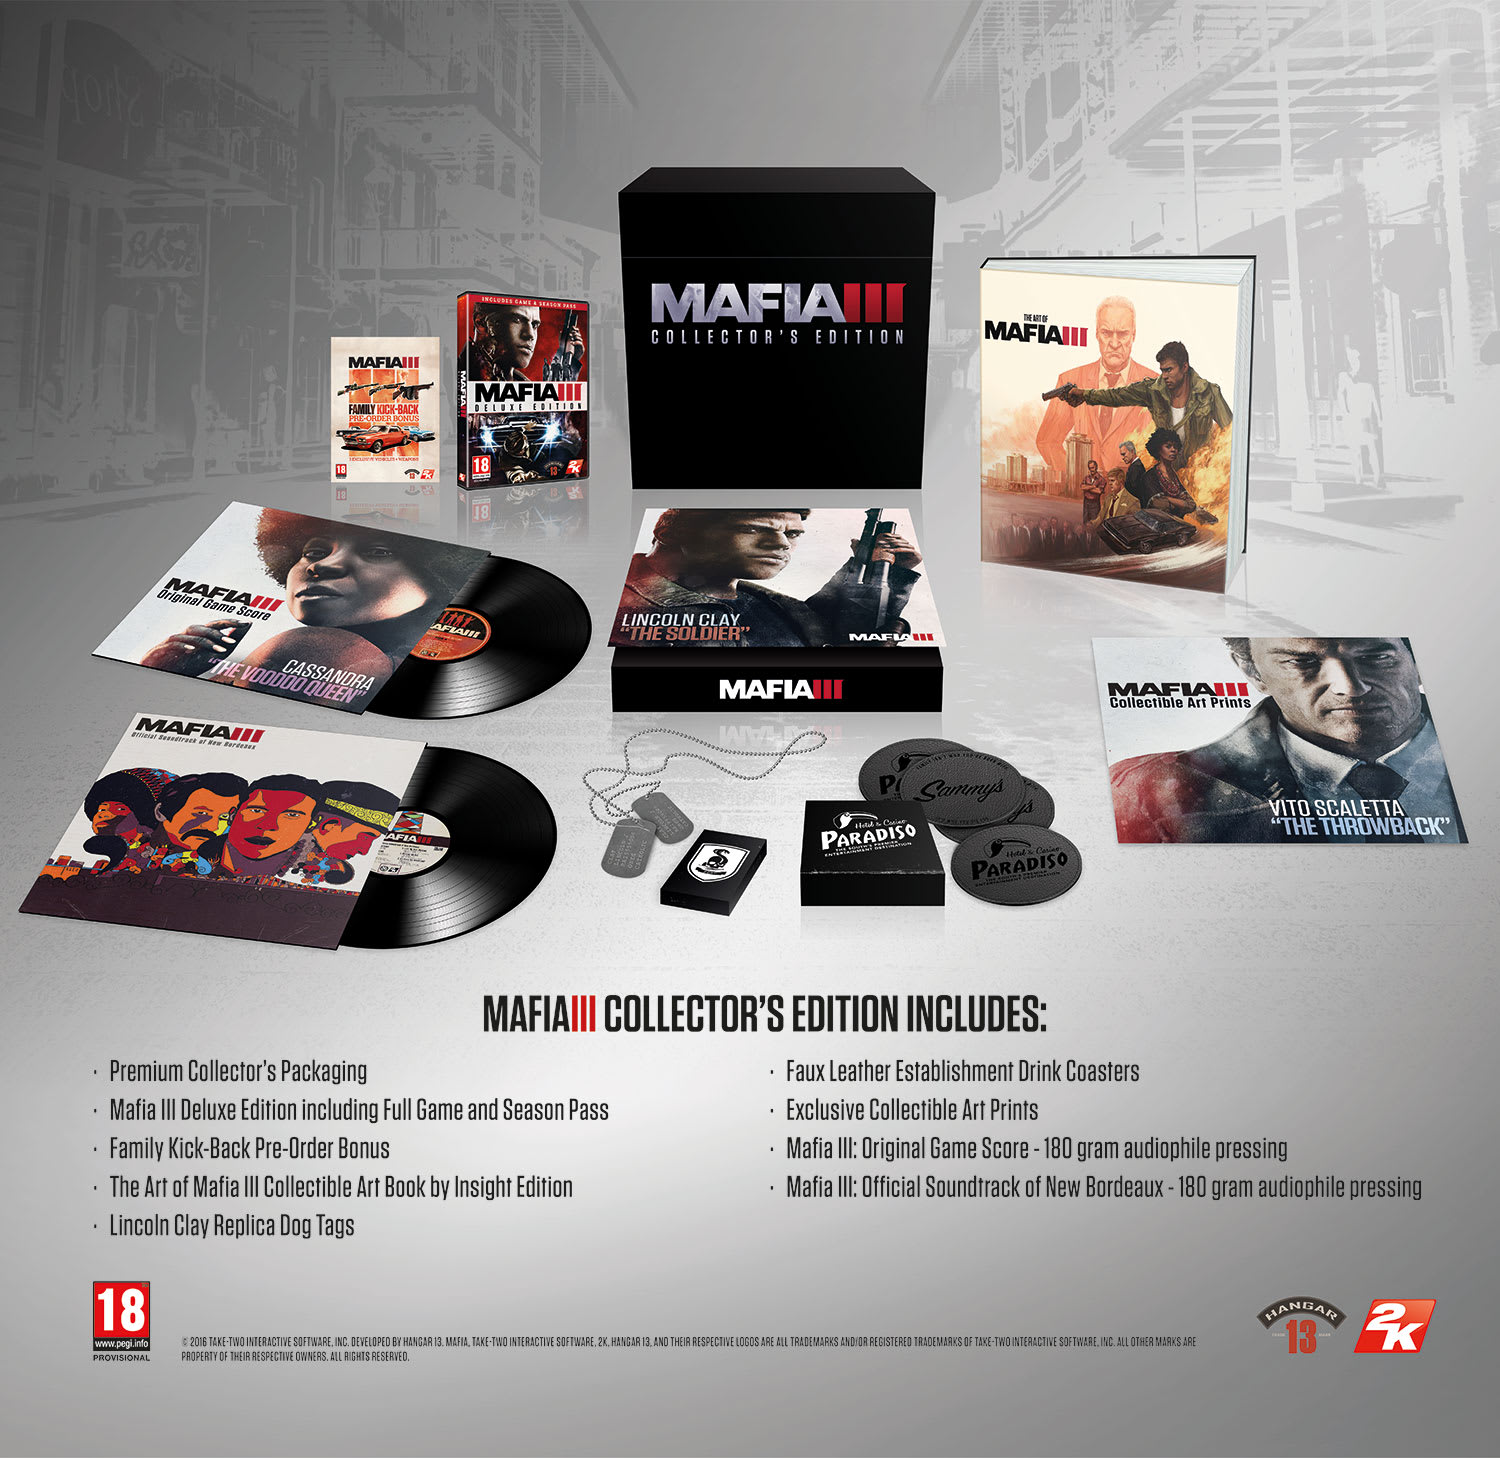 Mafia 3 Collector's Edition - Pre-order Now at GAME.co.uk!